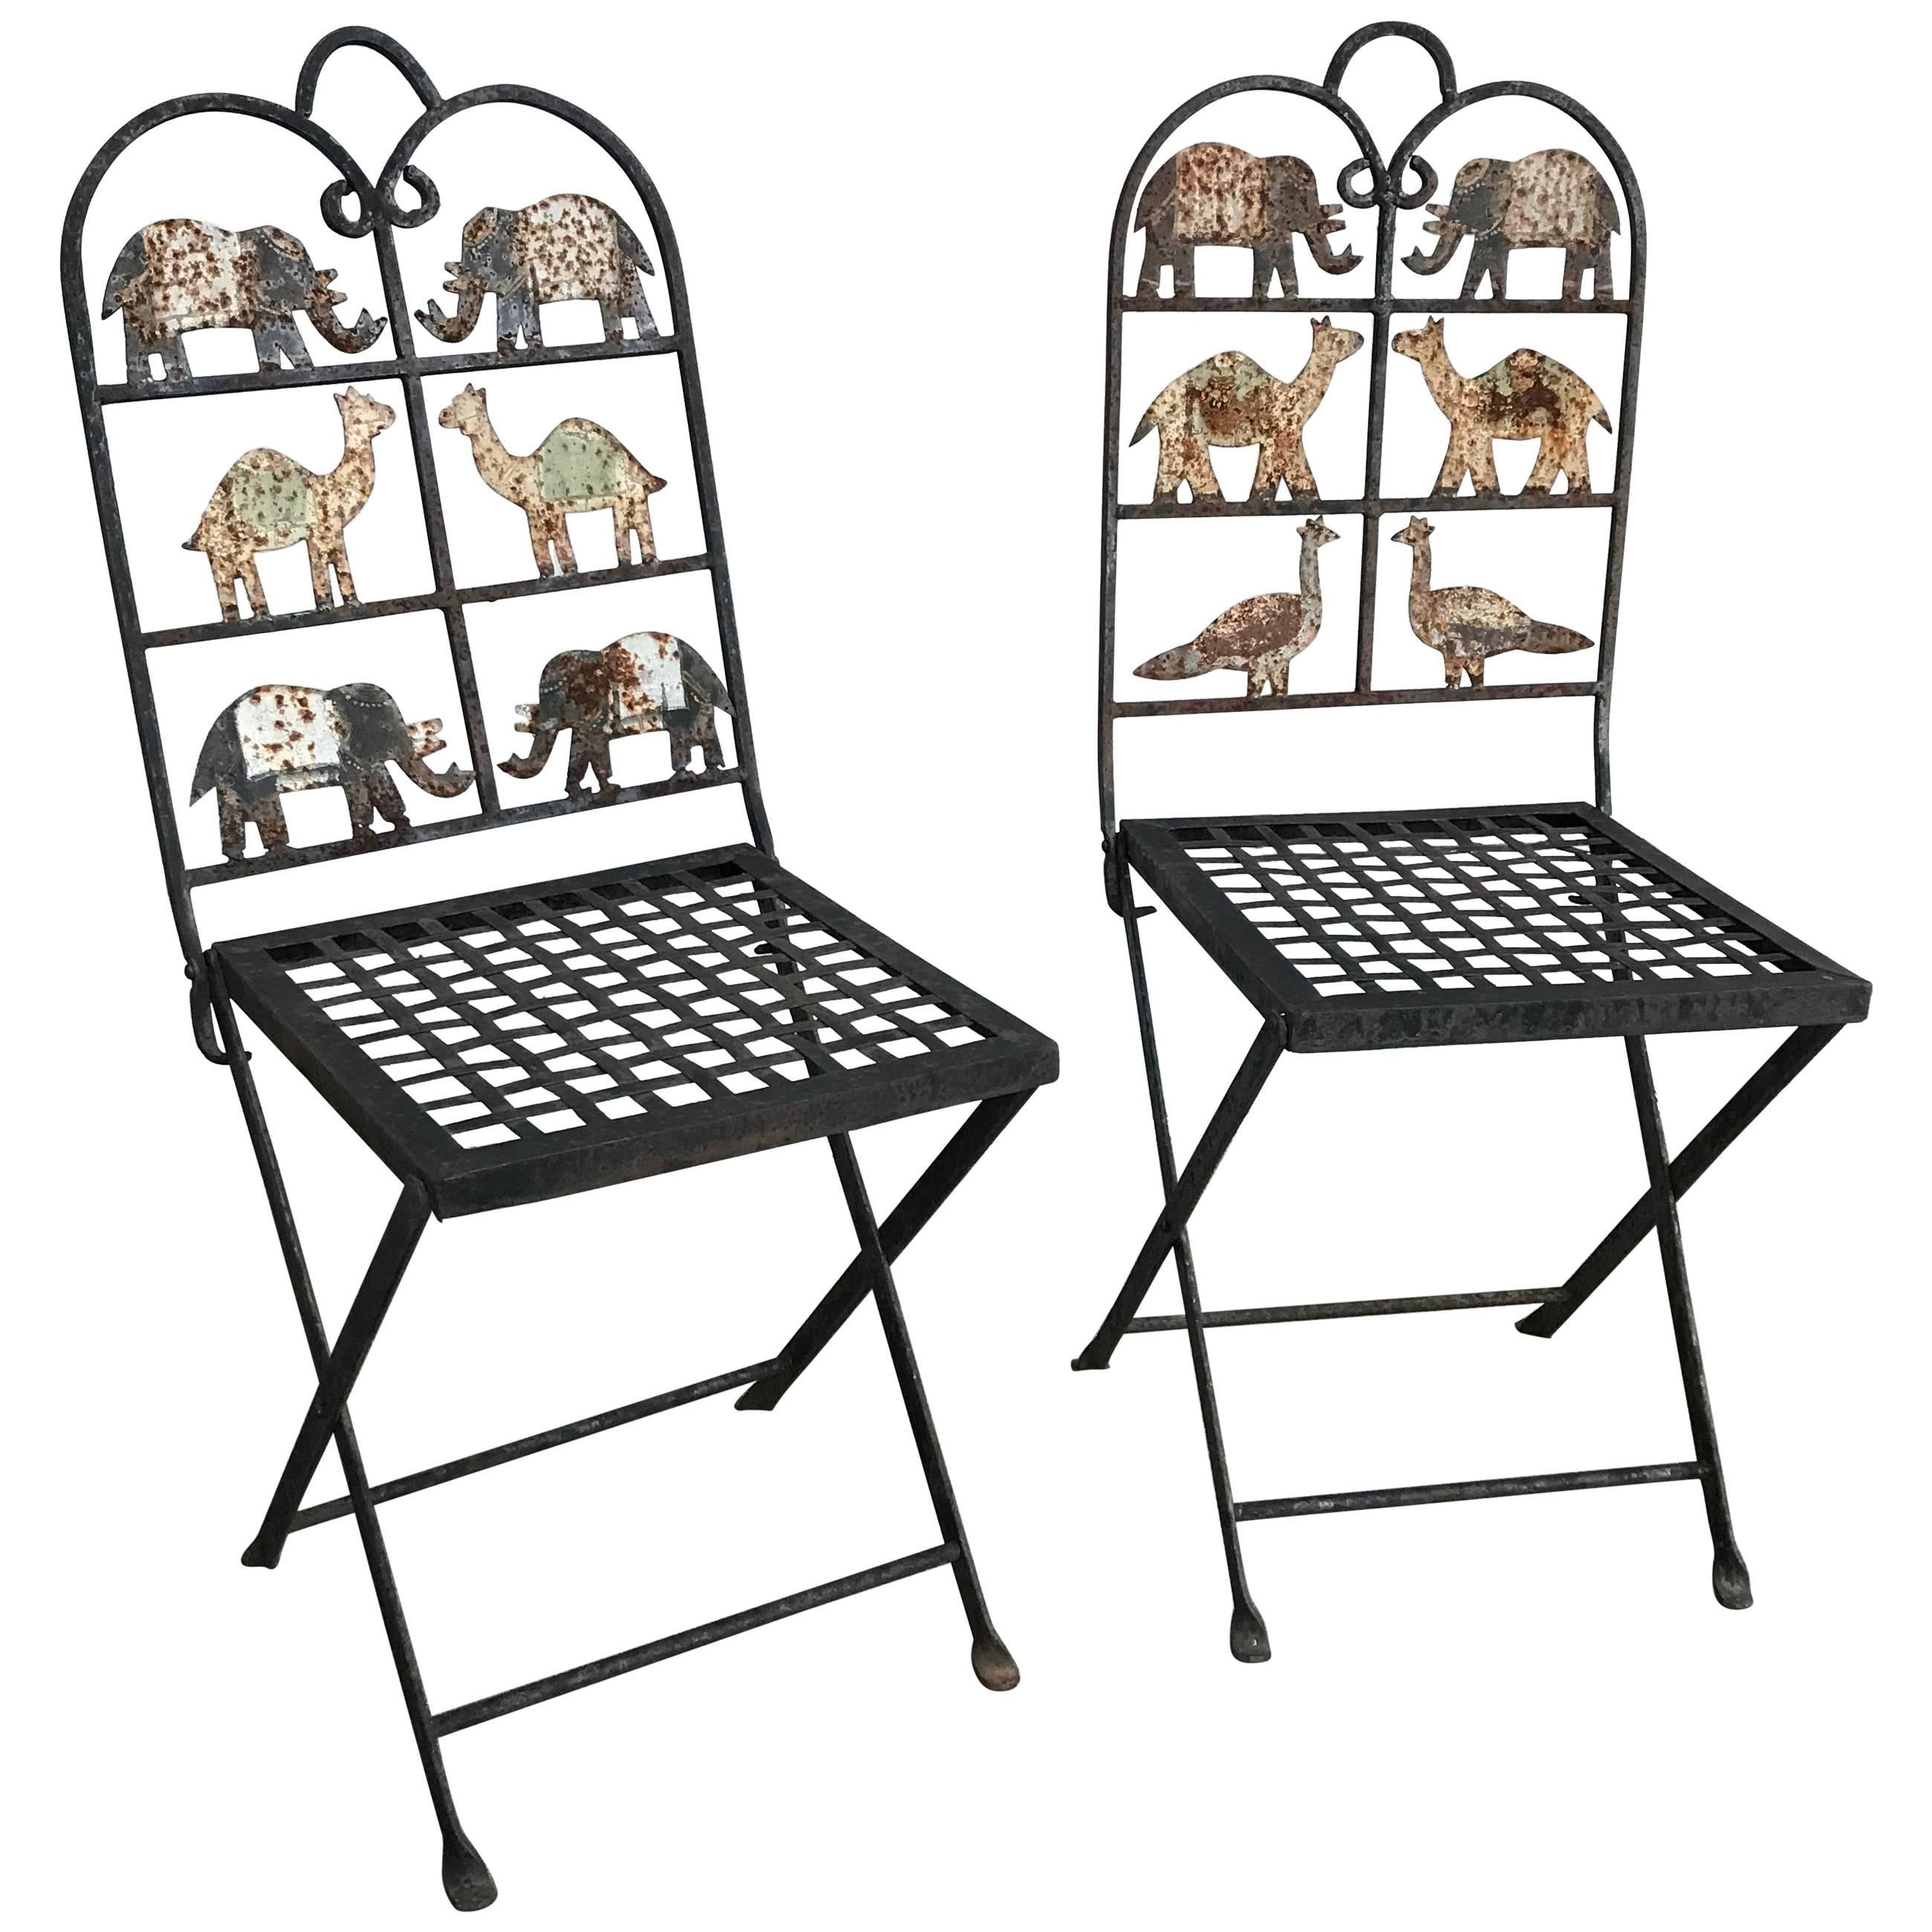 pair of wrought iron garden chairs with animals